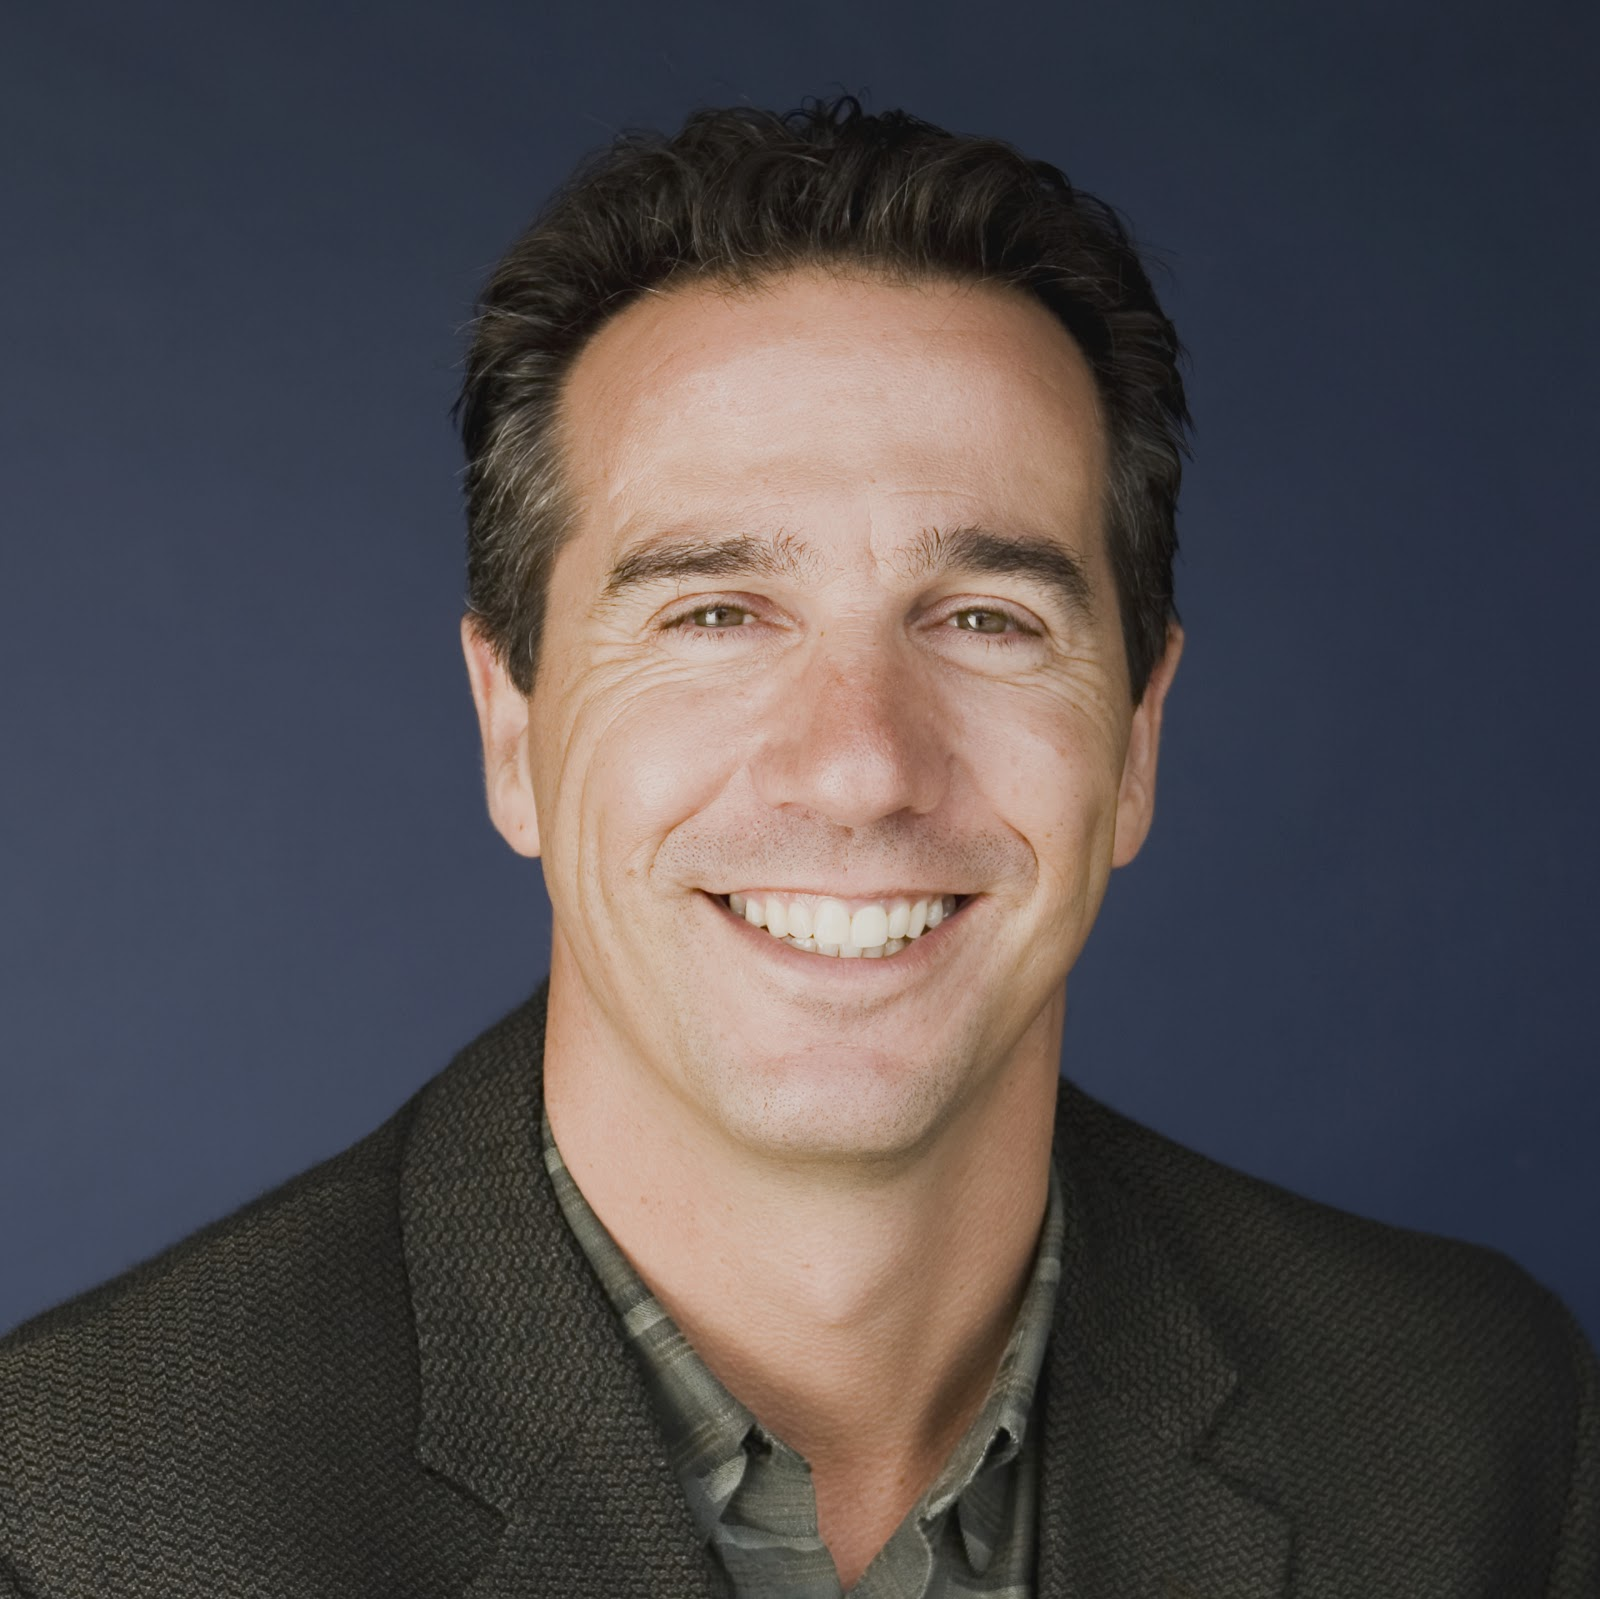 Ray Arata, J.D., Co-Founder, Partner